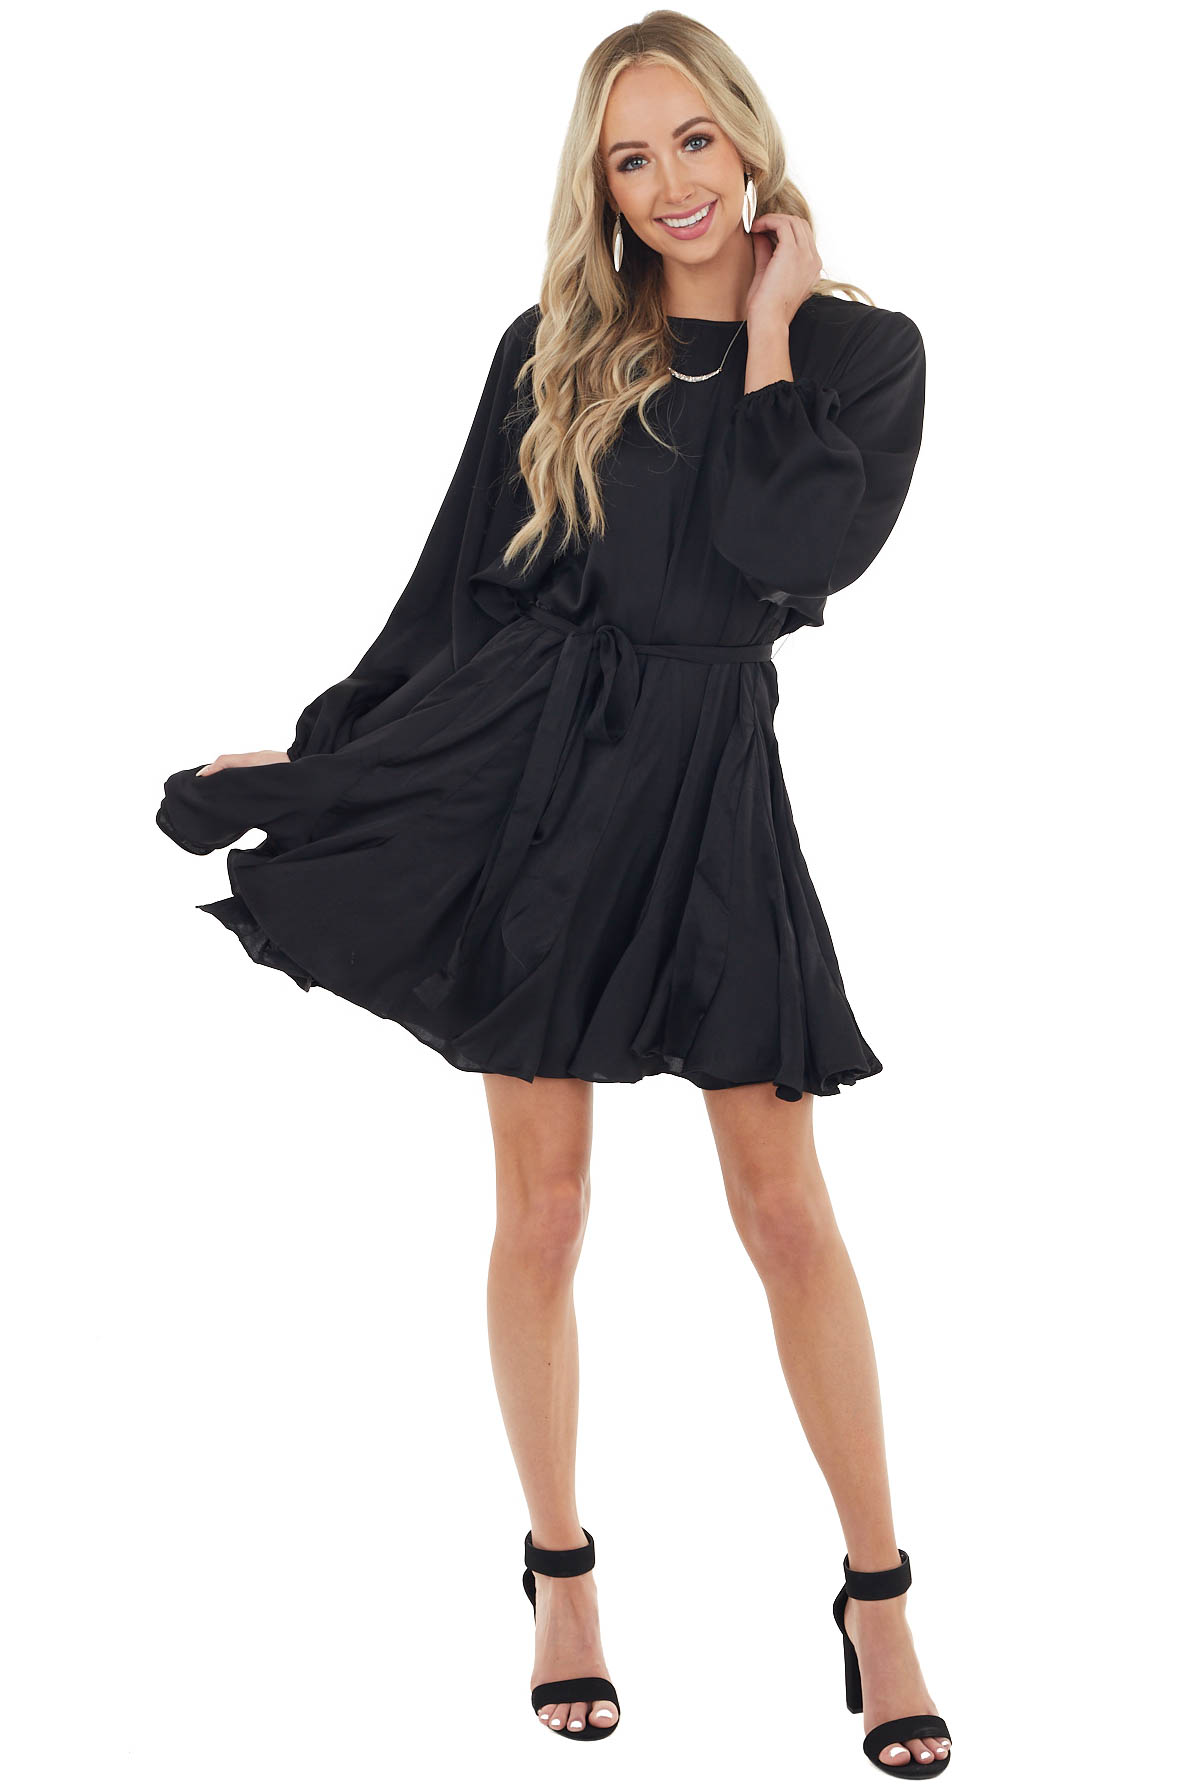 Black Satin Swing Dress with Long Sleeves and Front Tie